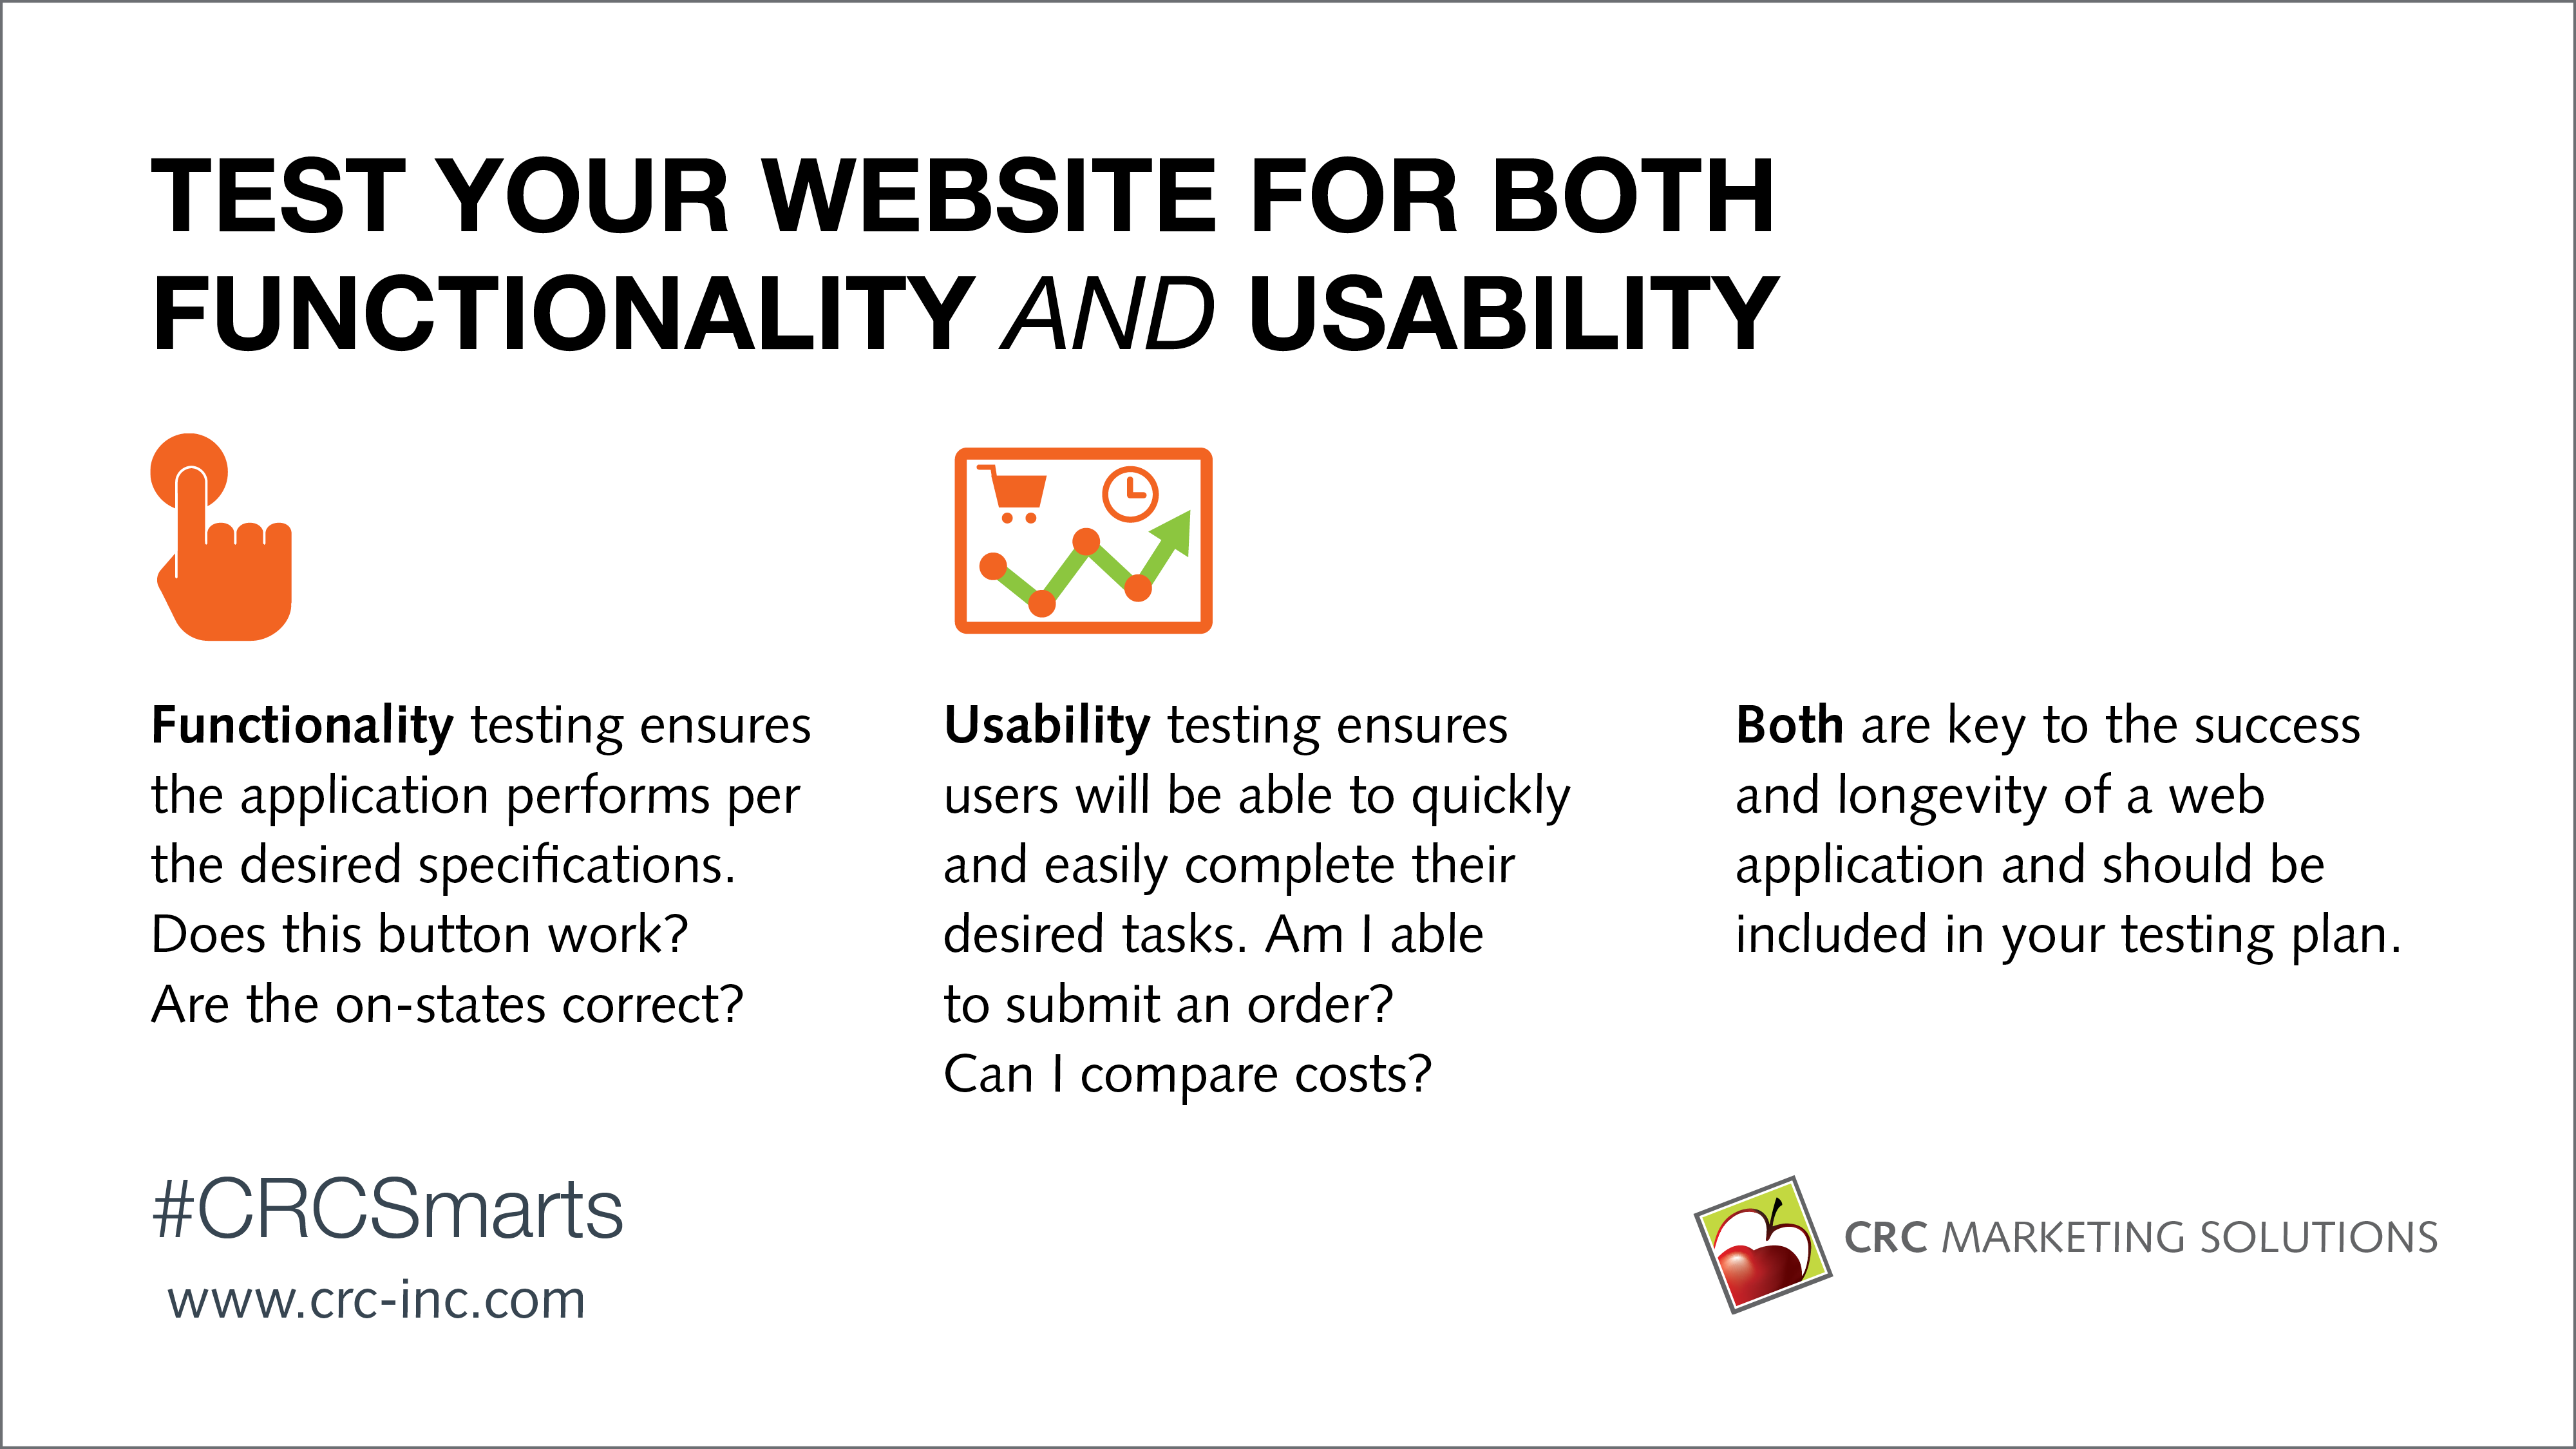 Test your website for both functionality and usability